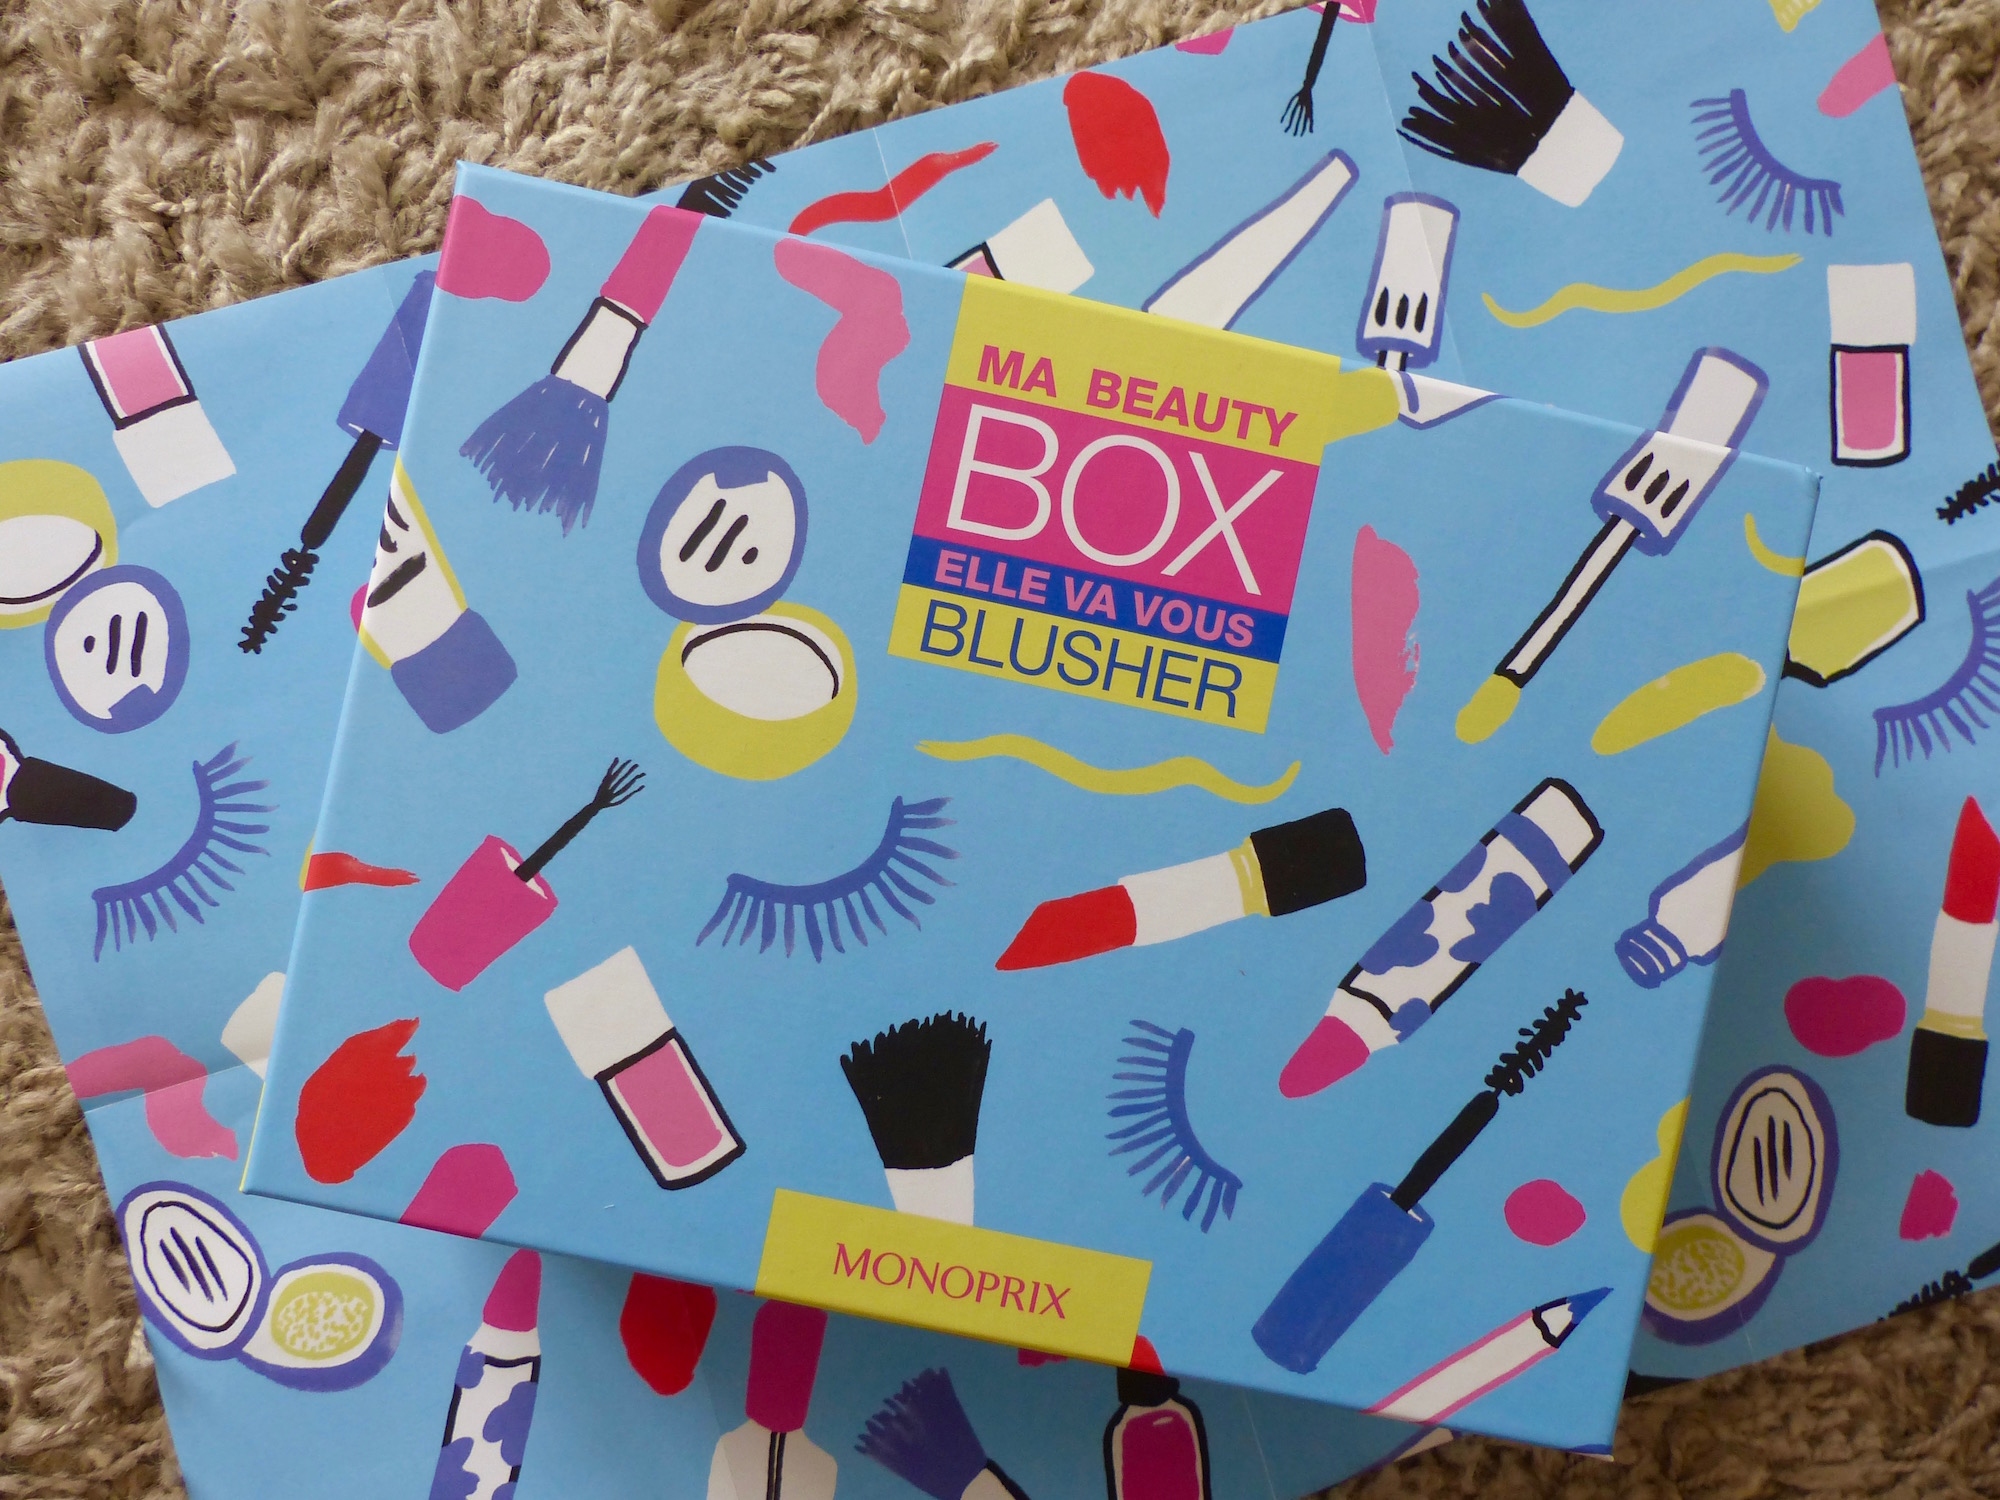 beauty box monoprix